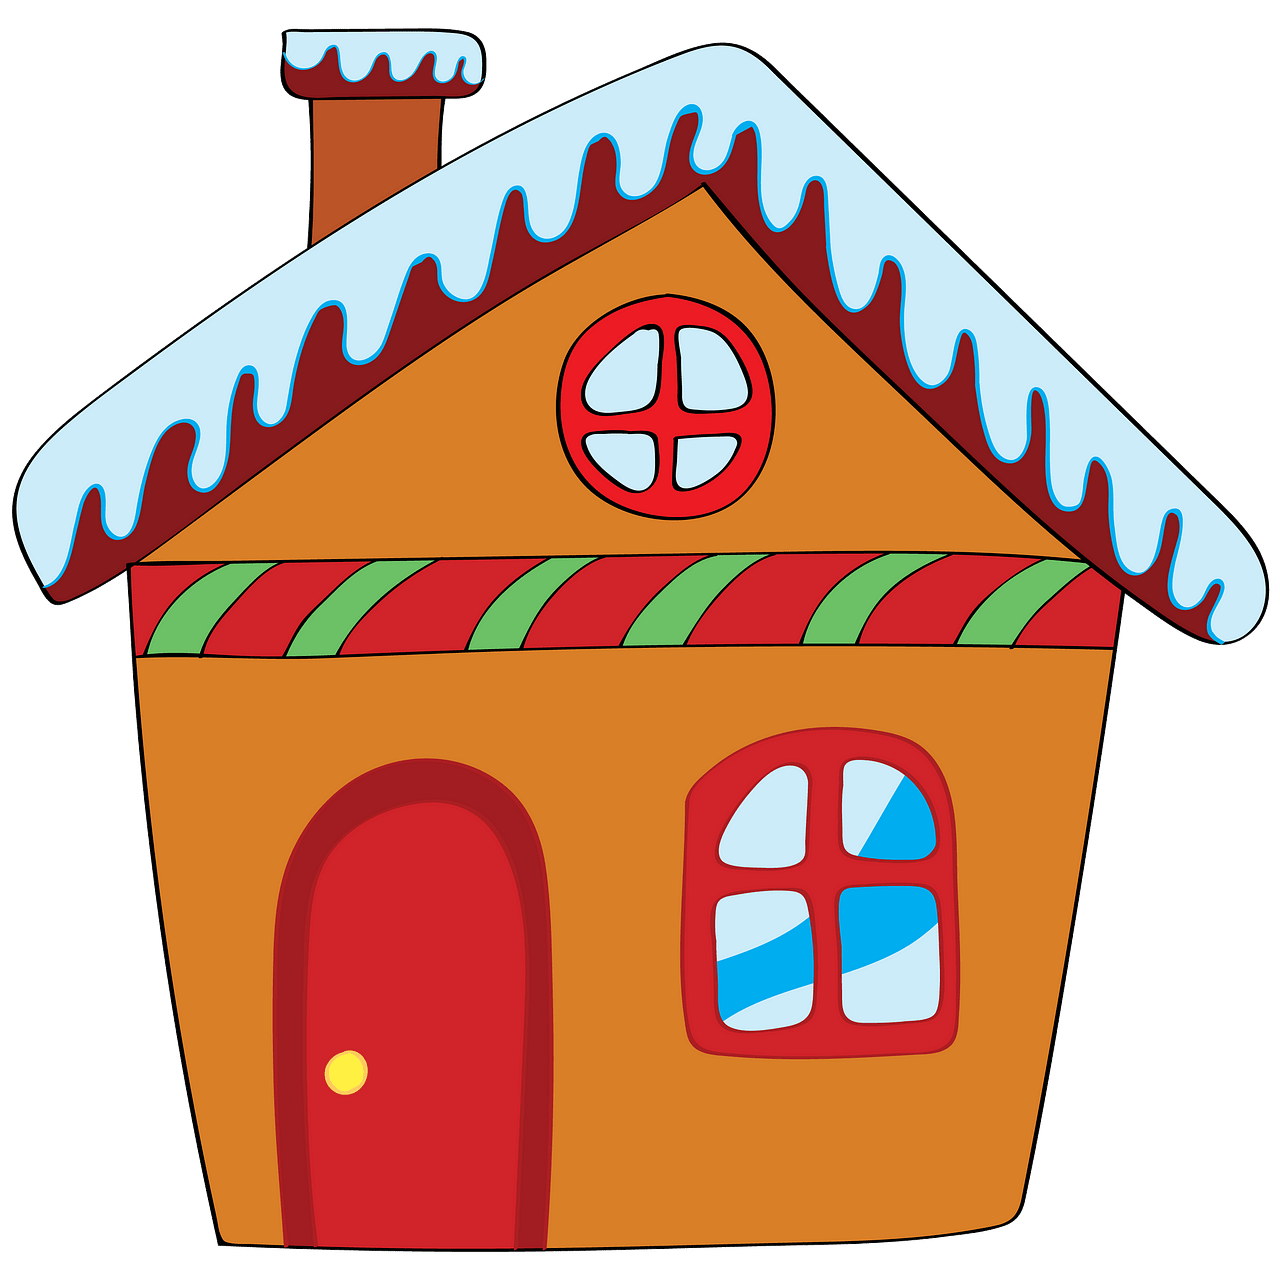 Gingerbread house clipart. Free download..